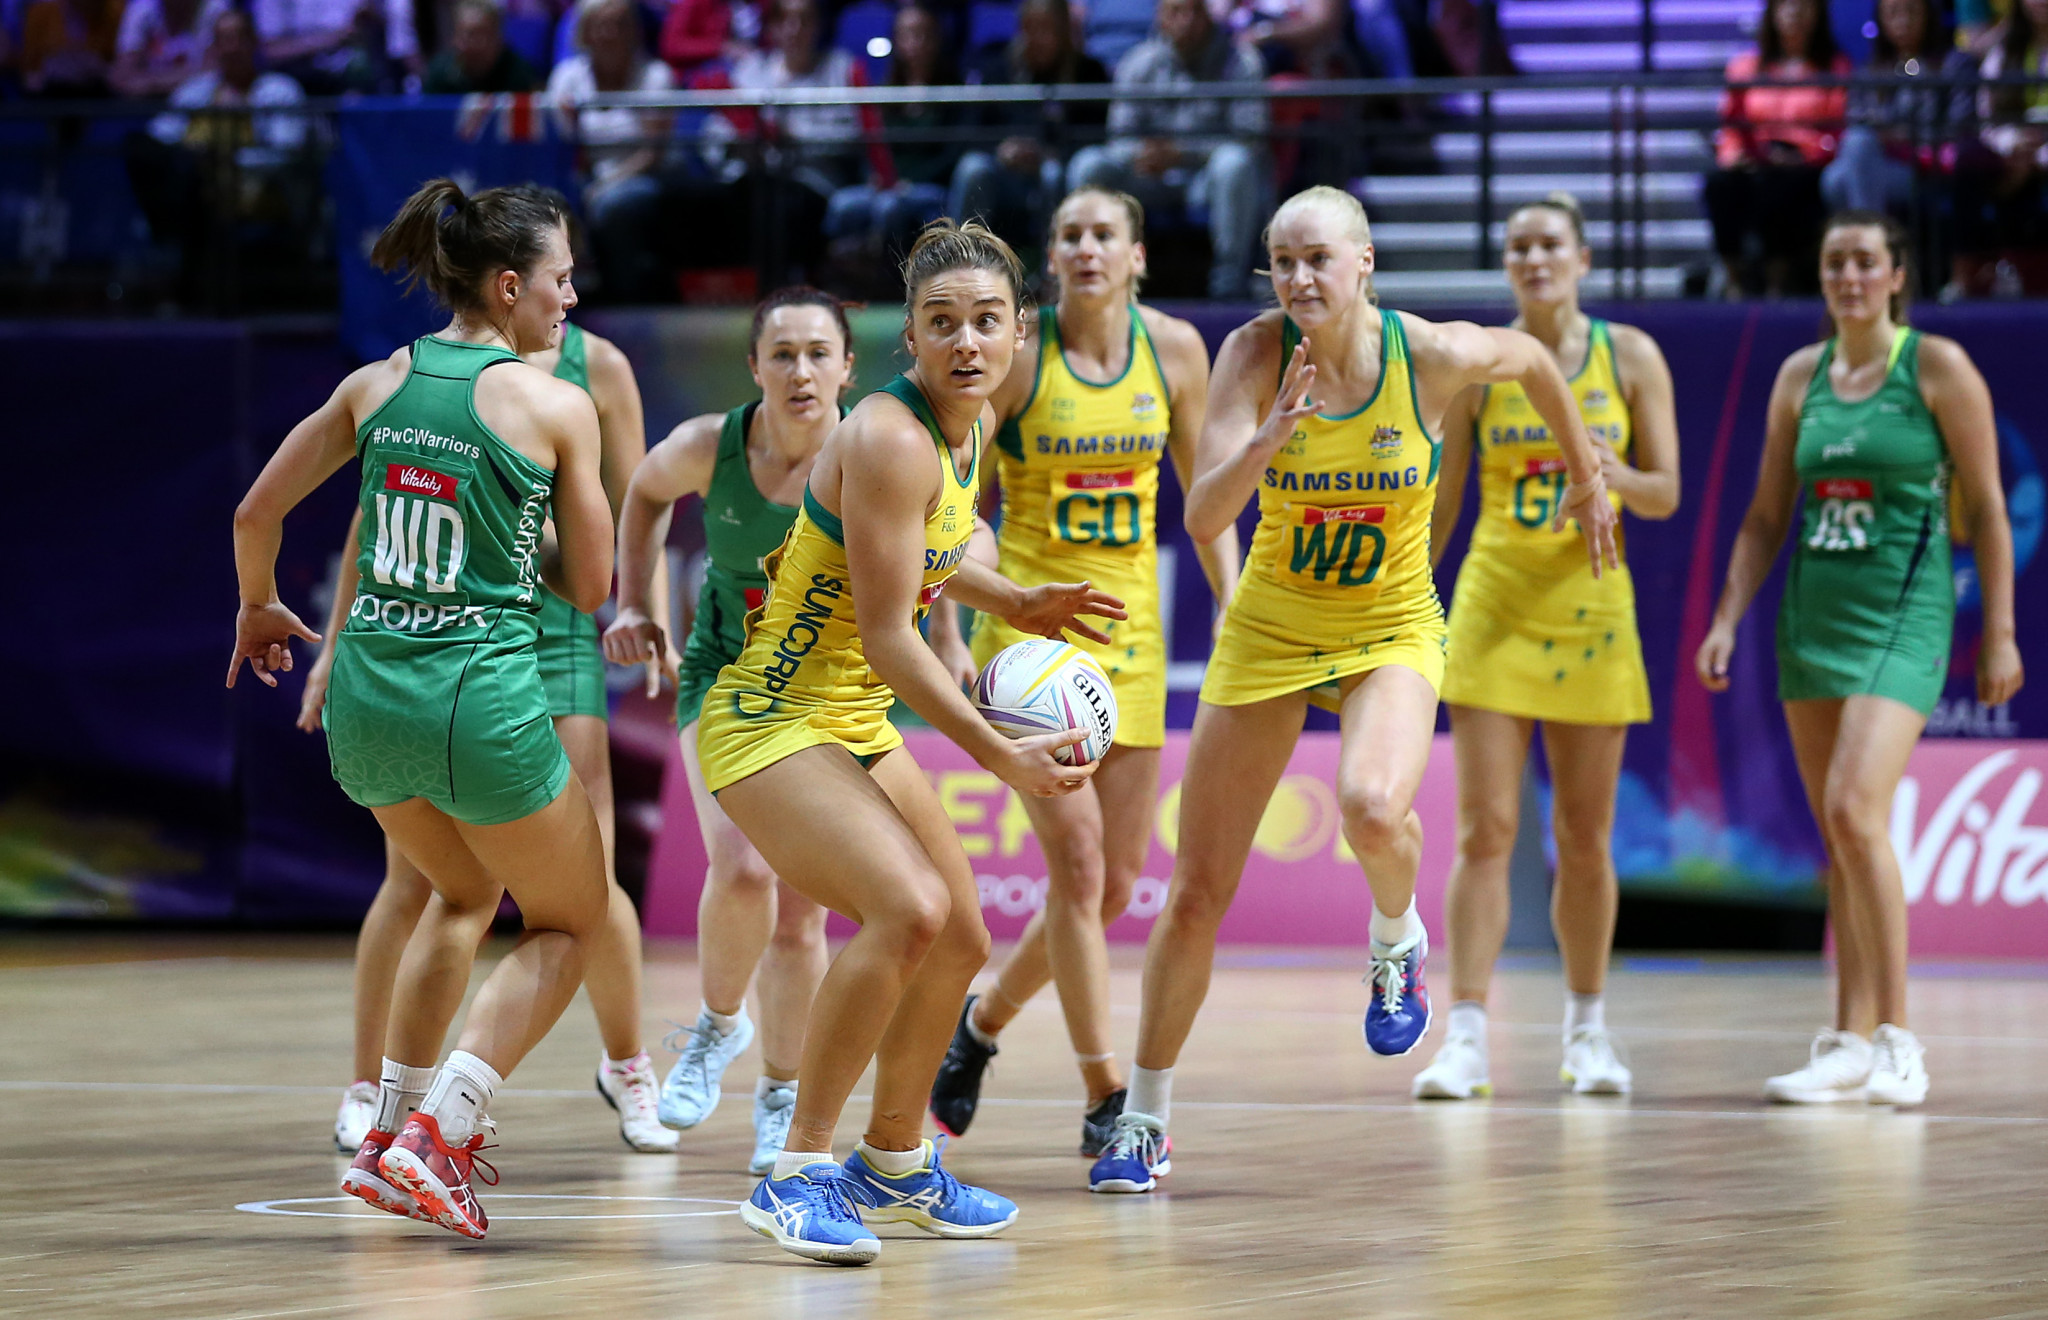 Dominant Australia begin Netball World Cup in style